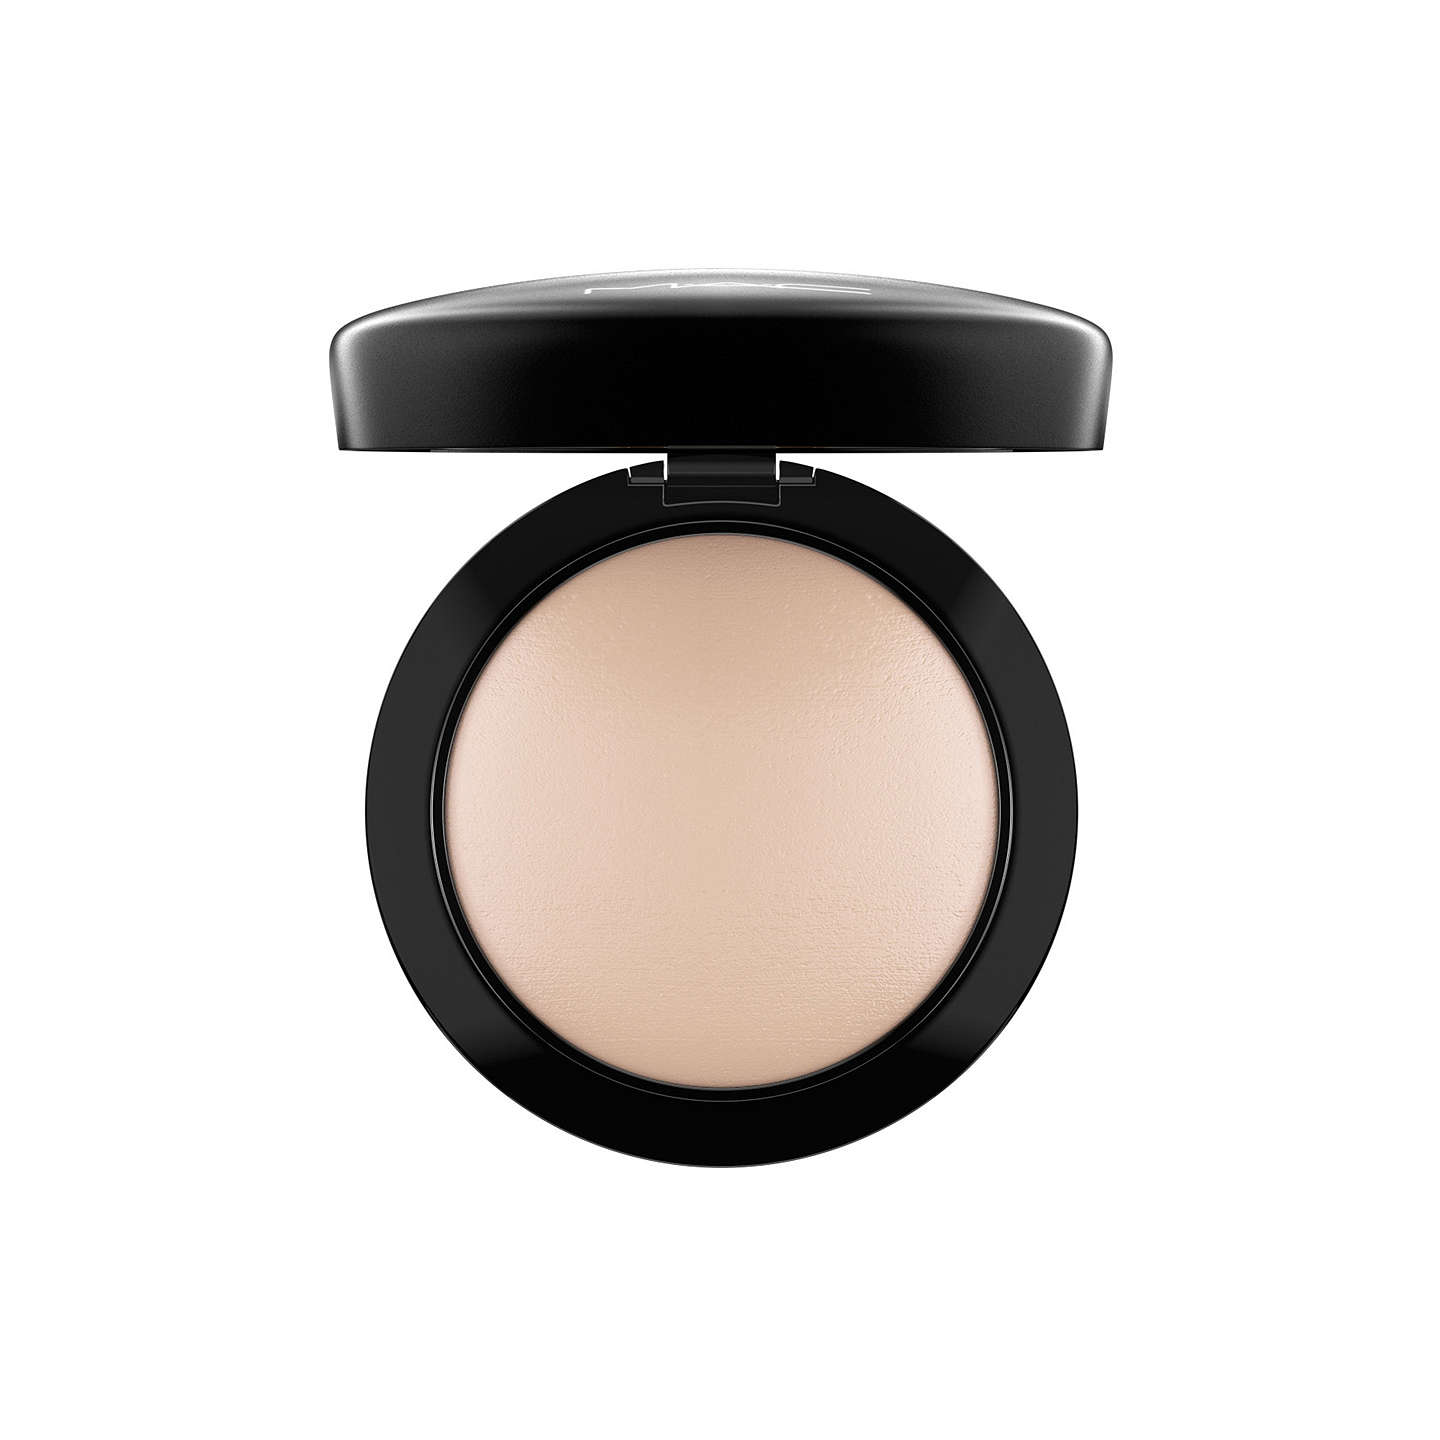 BuyMAC Mineralize Skinfinish Natural, Light Online at johnlewis.com